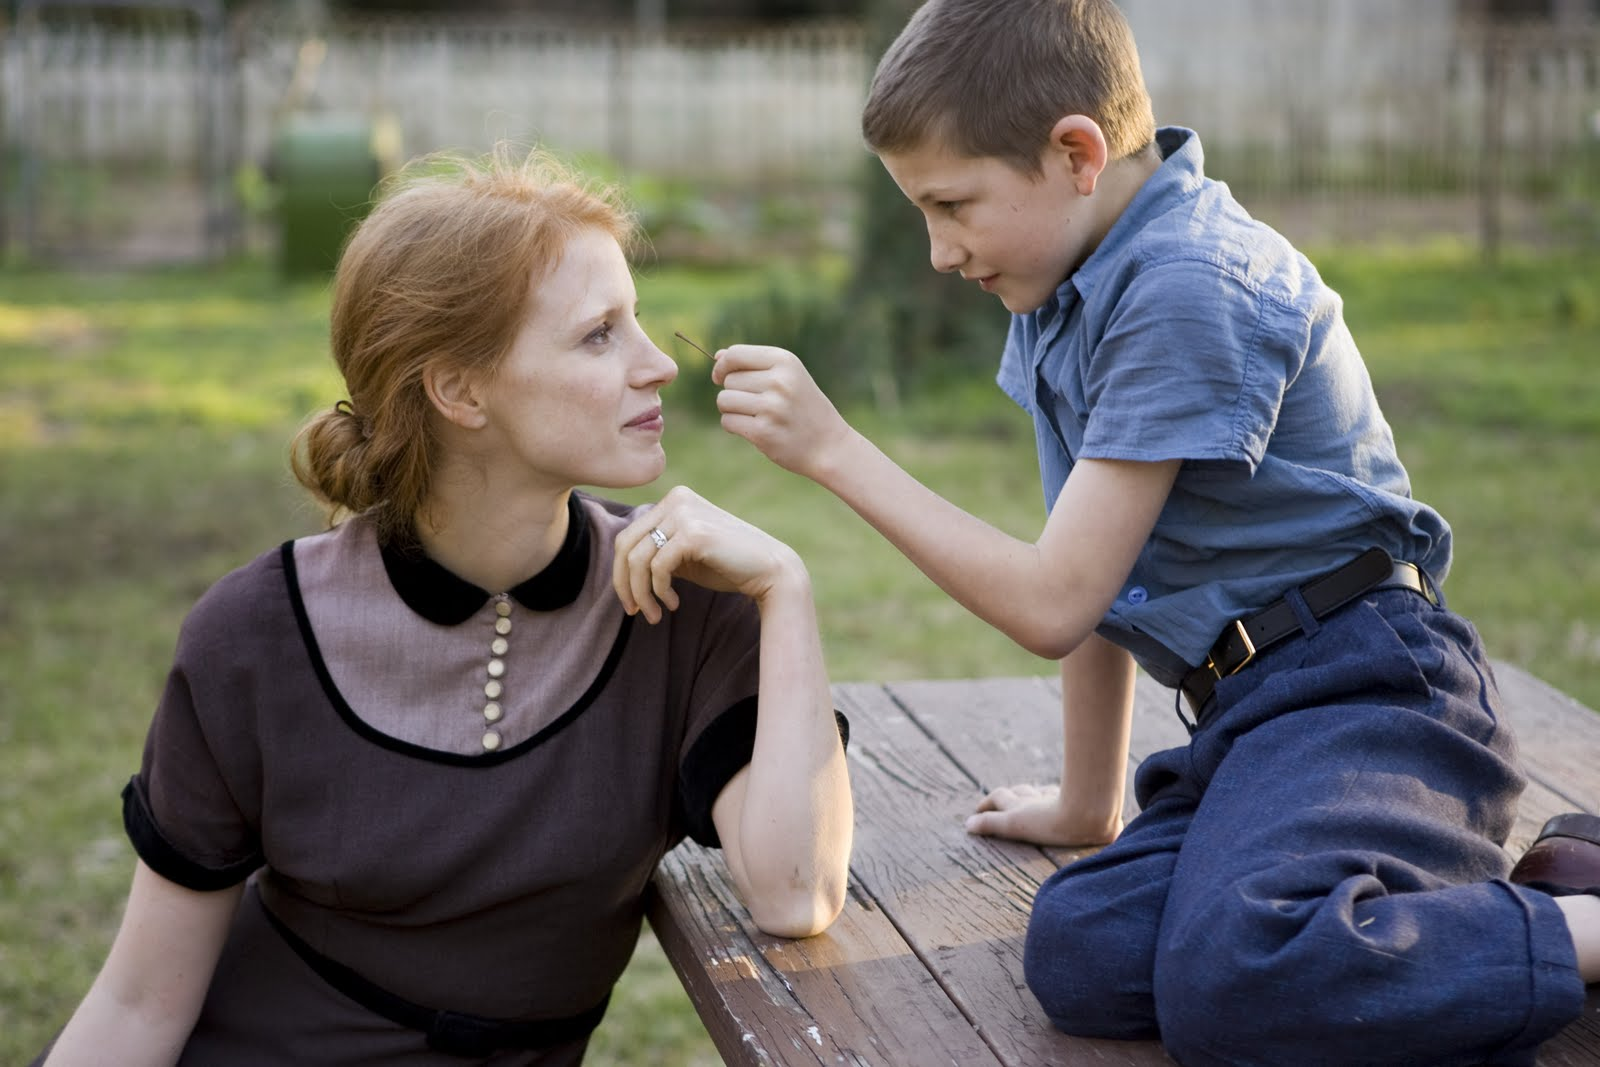 http://1.bp.blogspot.com/-McL3DEPtkFM/Tl9a-ayjy-I/AAAAAAAABSQ/KXTKLPE3VzE/s1600/tree-of-life-movie-image-jessica-chastain-02.jpg